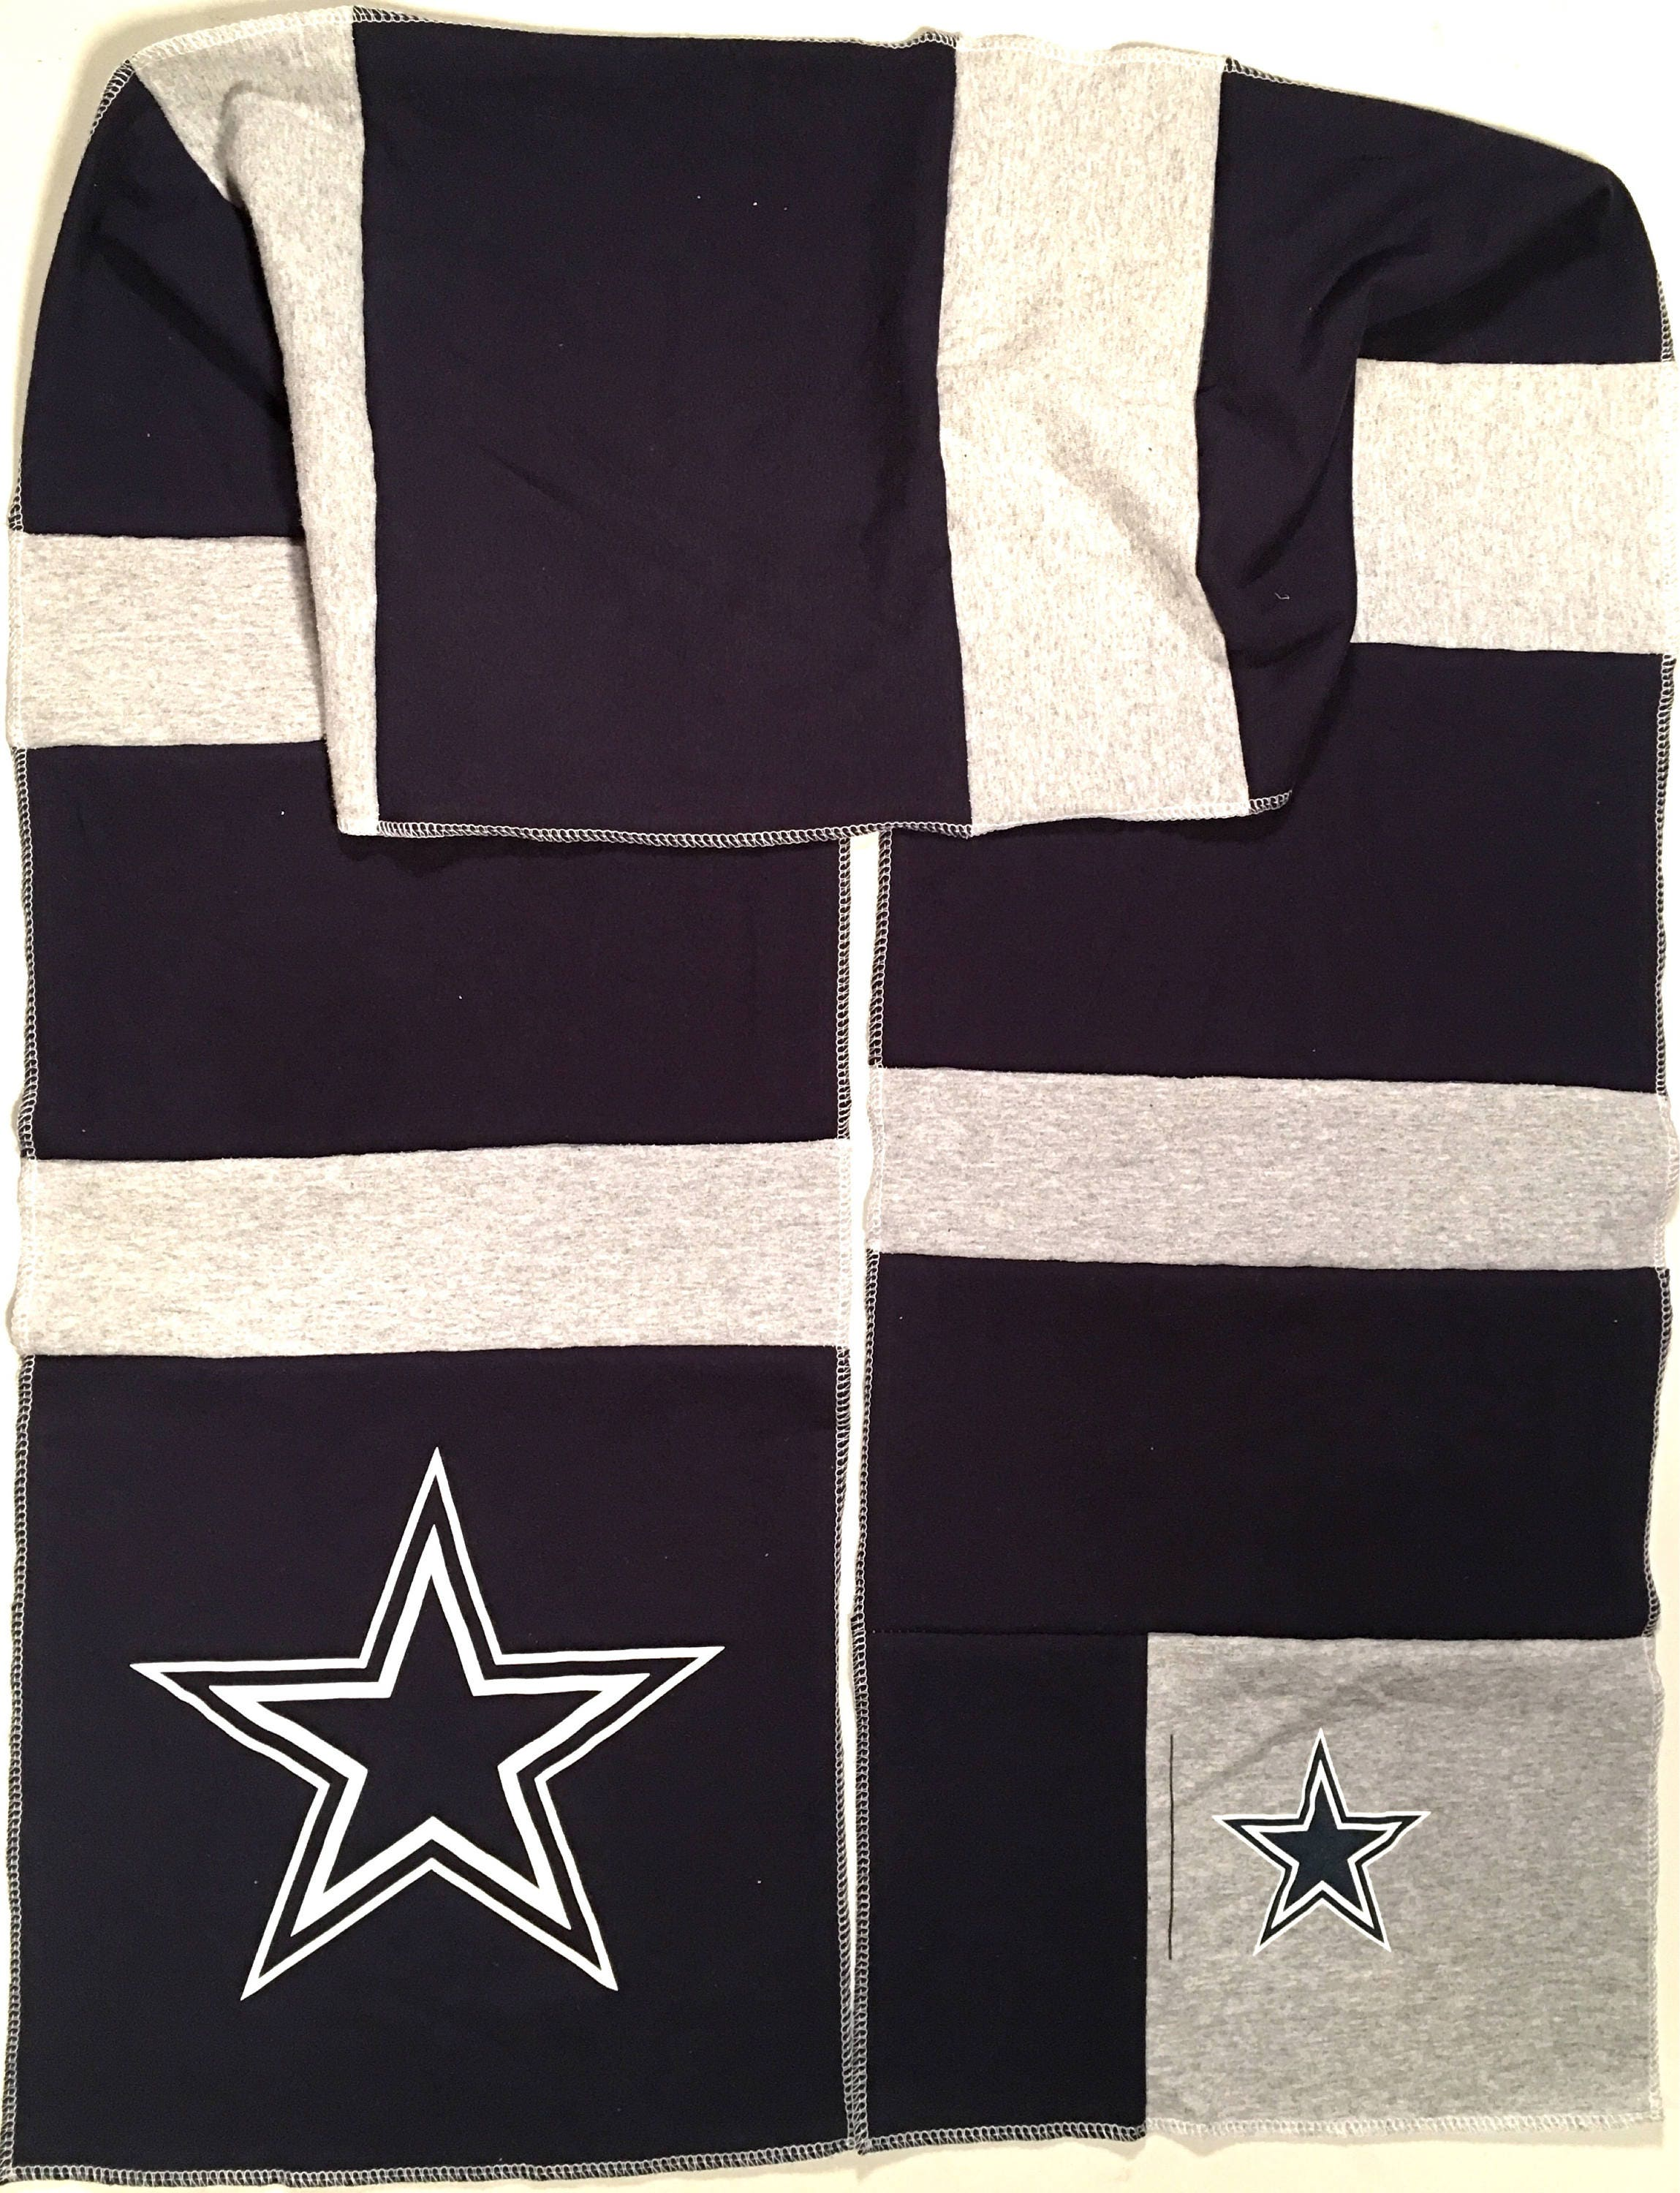 Long Scarf DALLAS COWBOYS Football NFL Team Spirit Upcycled Men's Woman's Unisex T-Shirt New Handmade Scarves